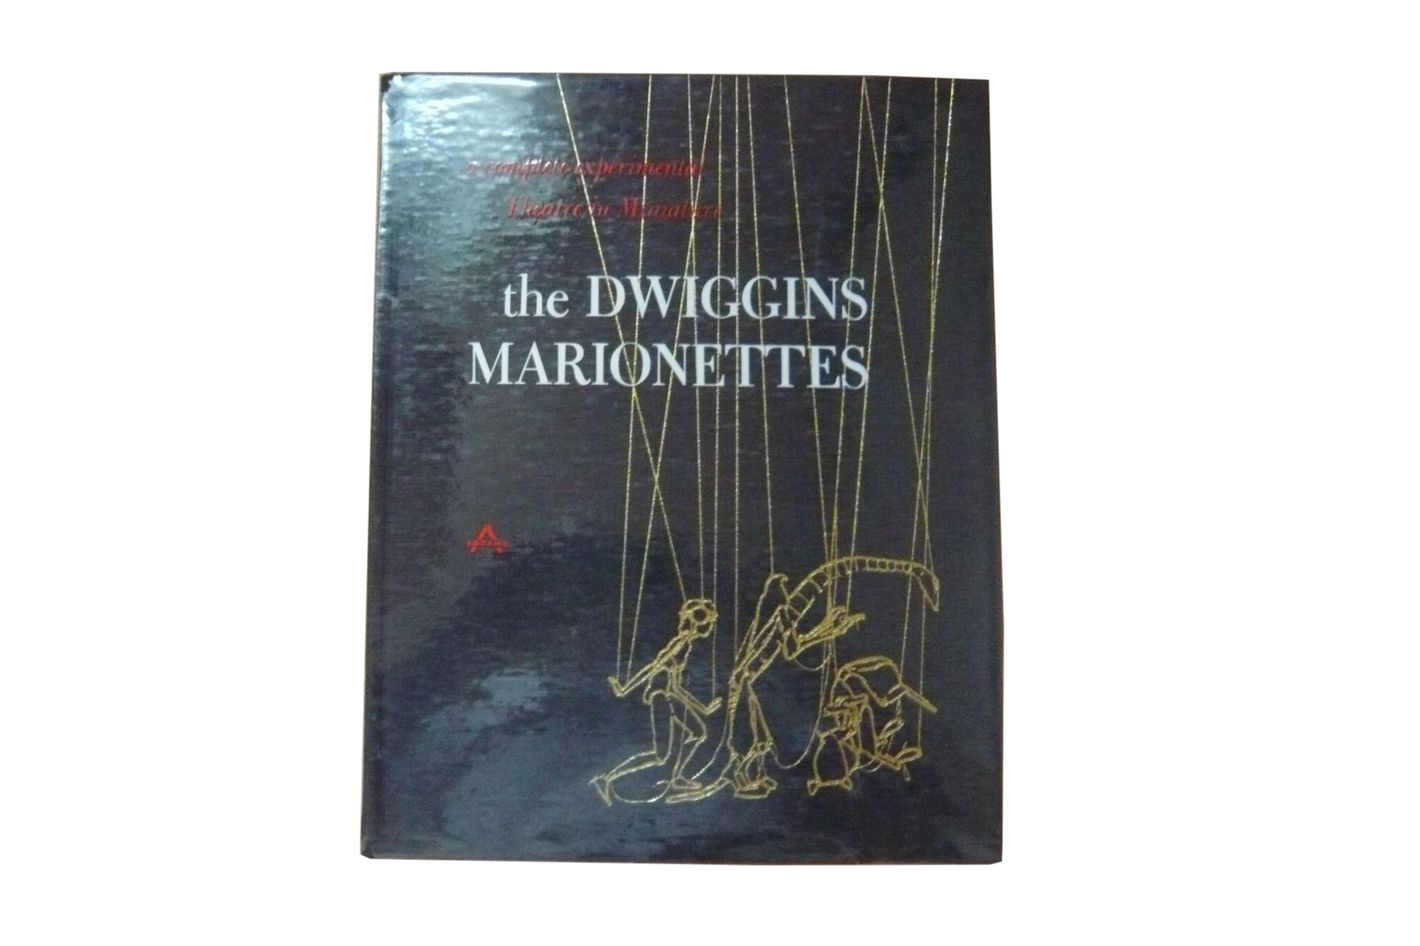 The Dwiggins Marionettes: A Complete Experimental Theater in Miniature by Dorothy Abbe